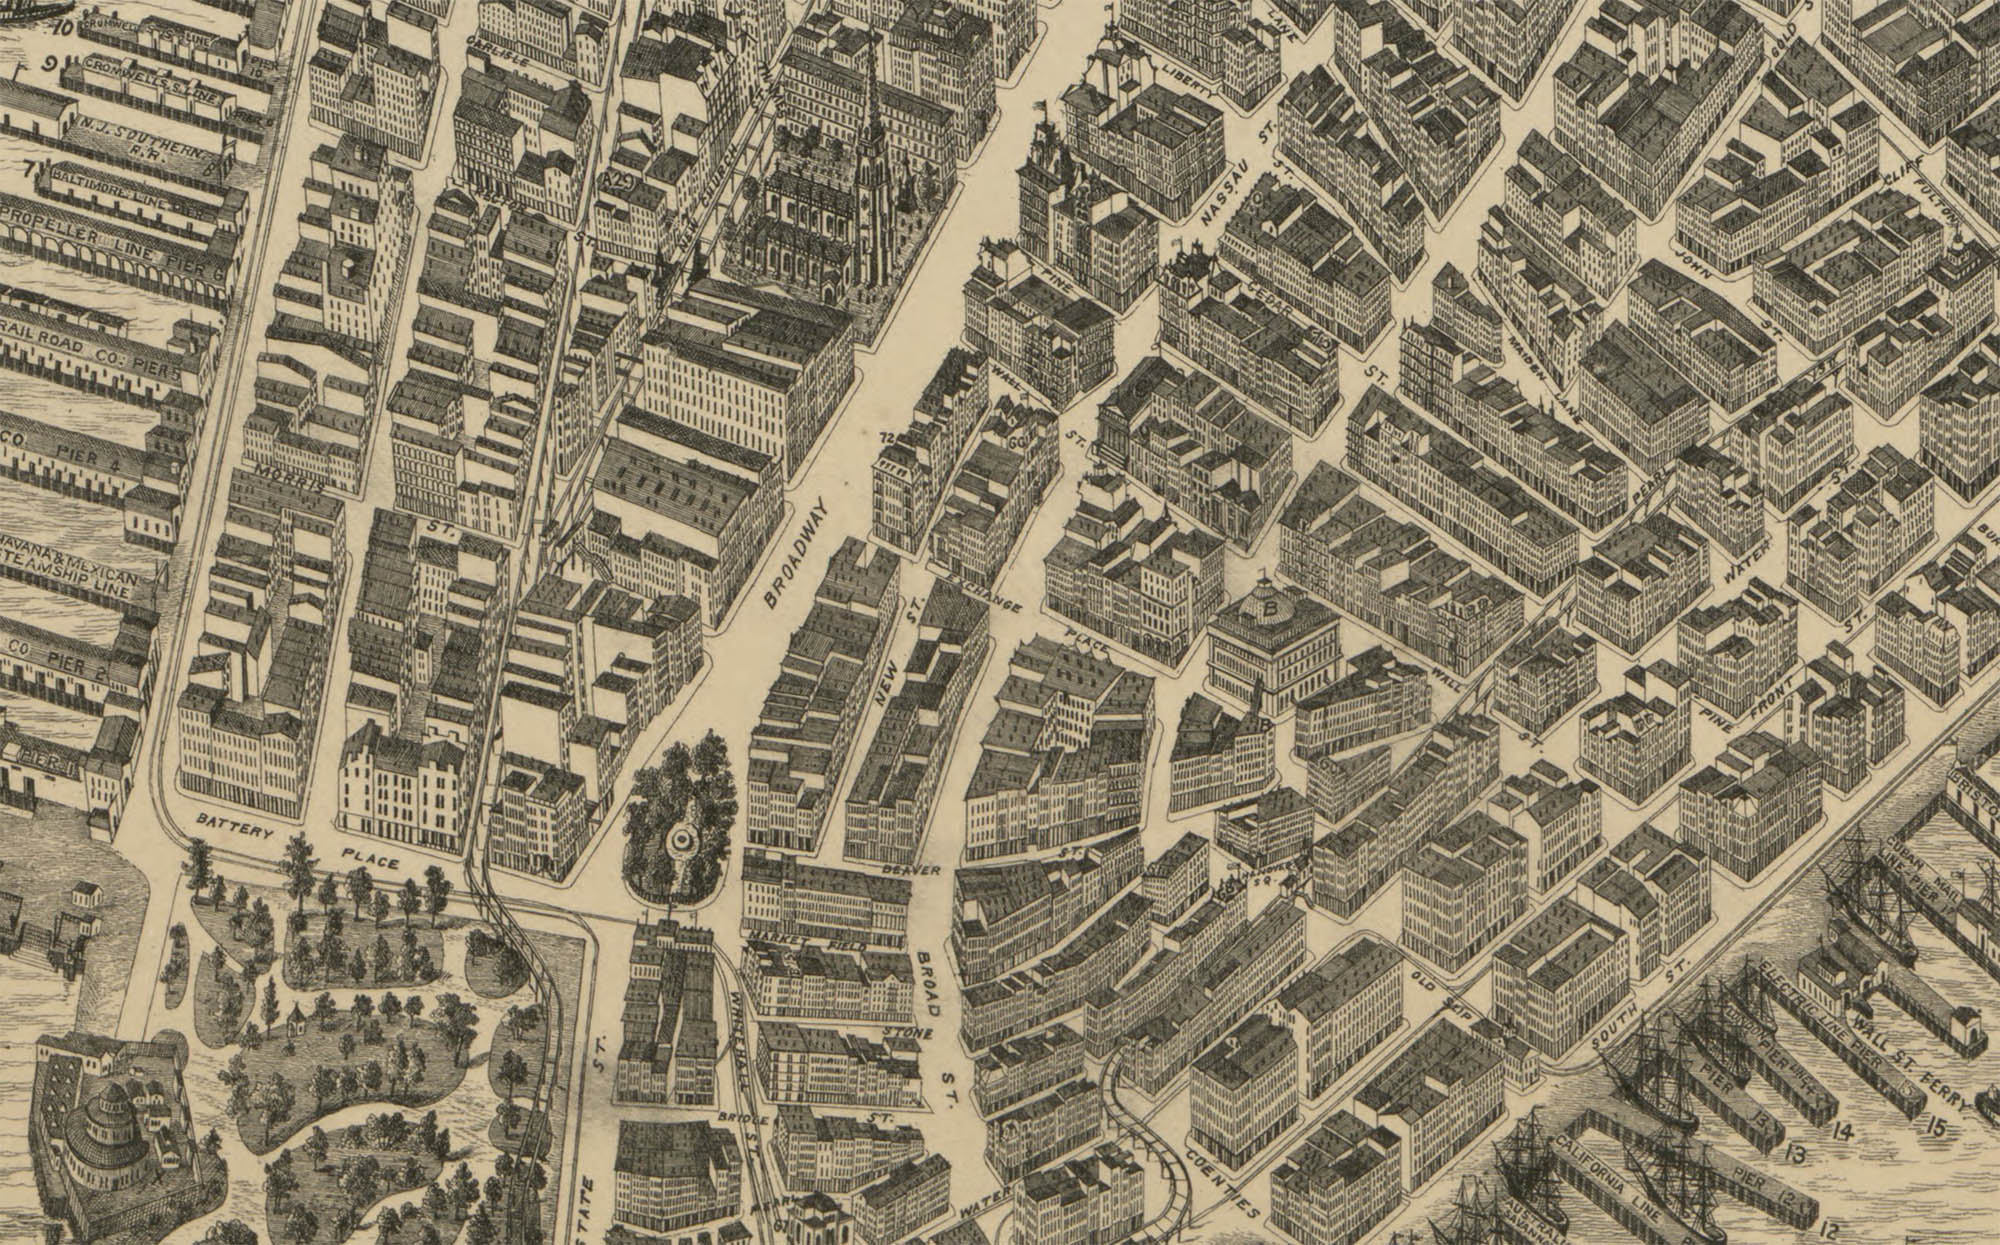 The Streets of New York – Aerial Street Maps